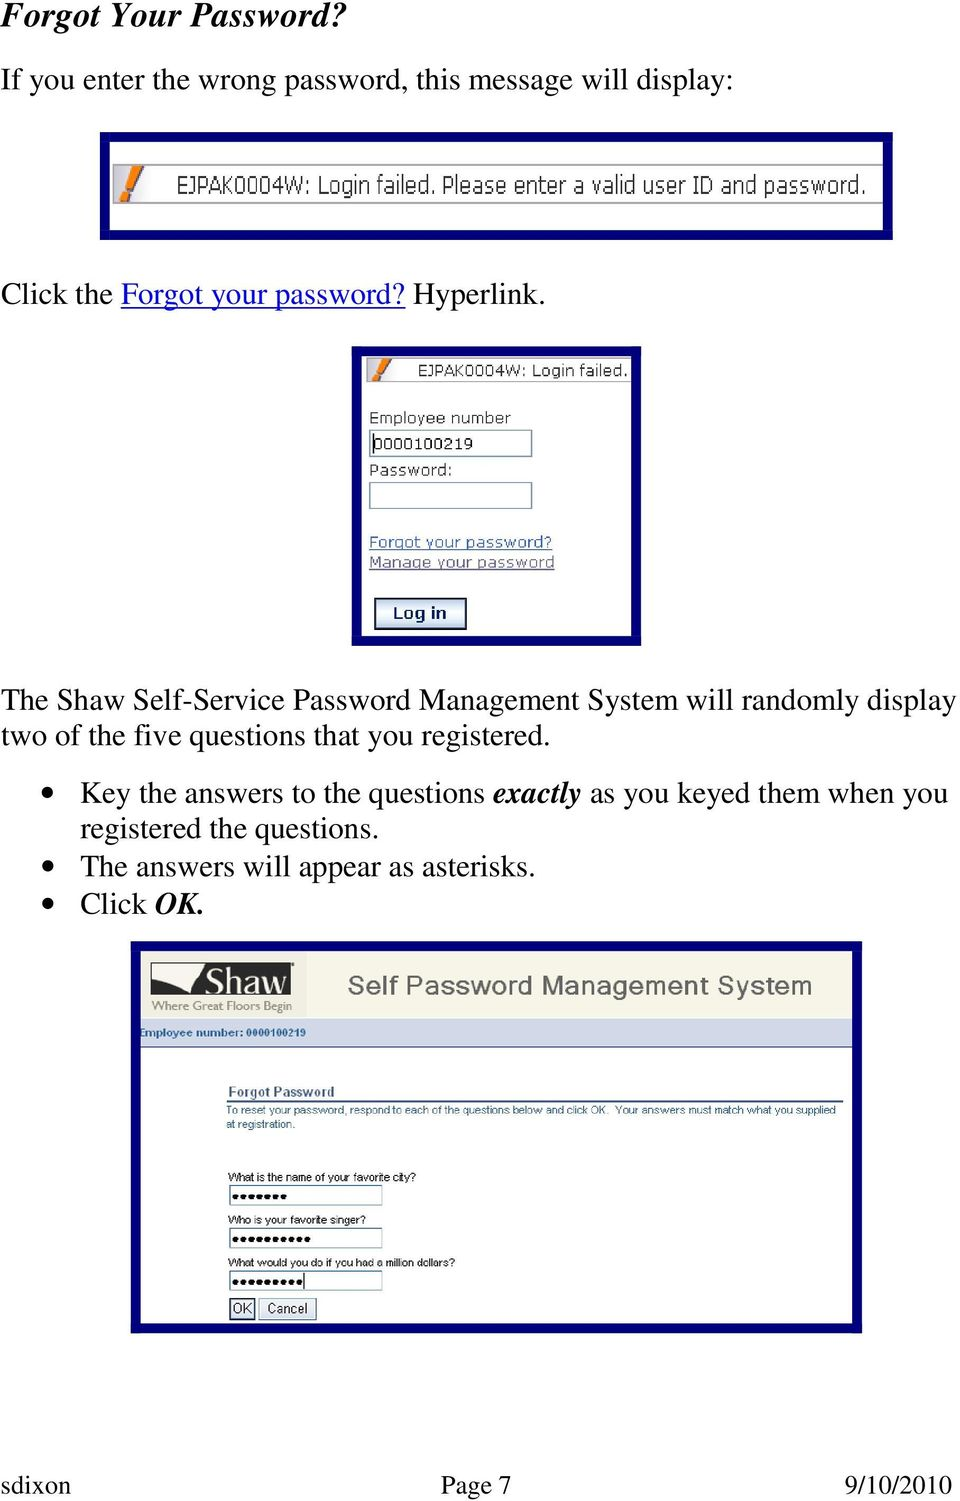 The Shaw Self-Service Password Management System will randomly display two of the five questions that